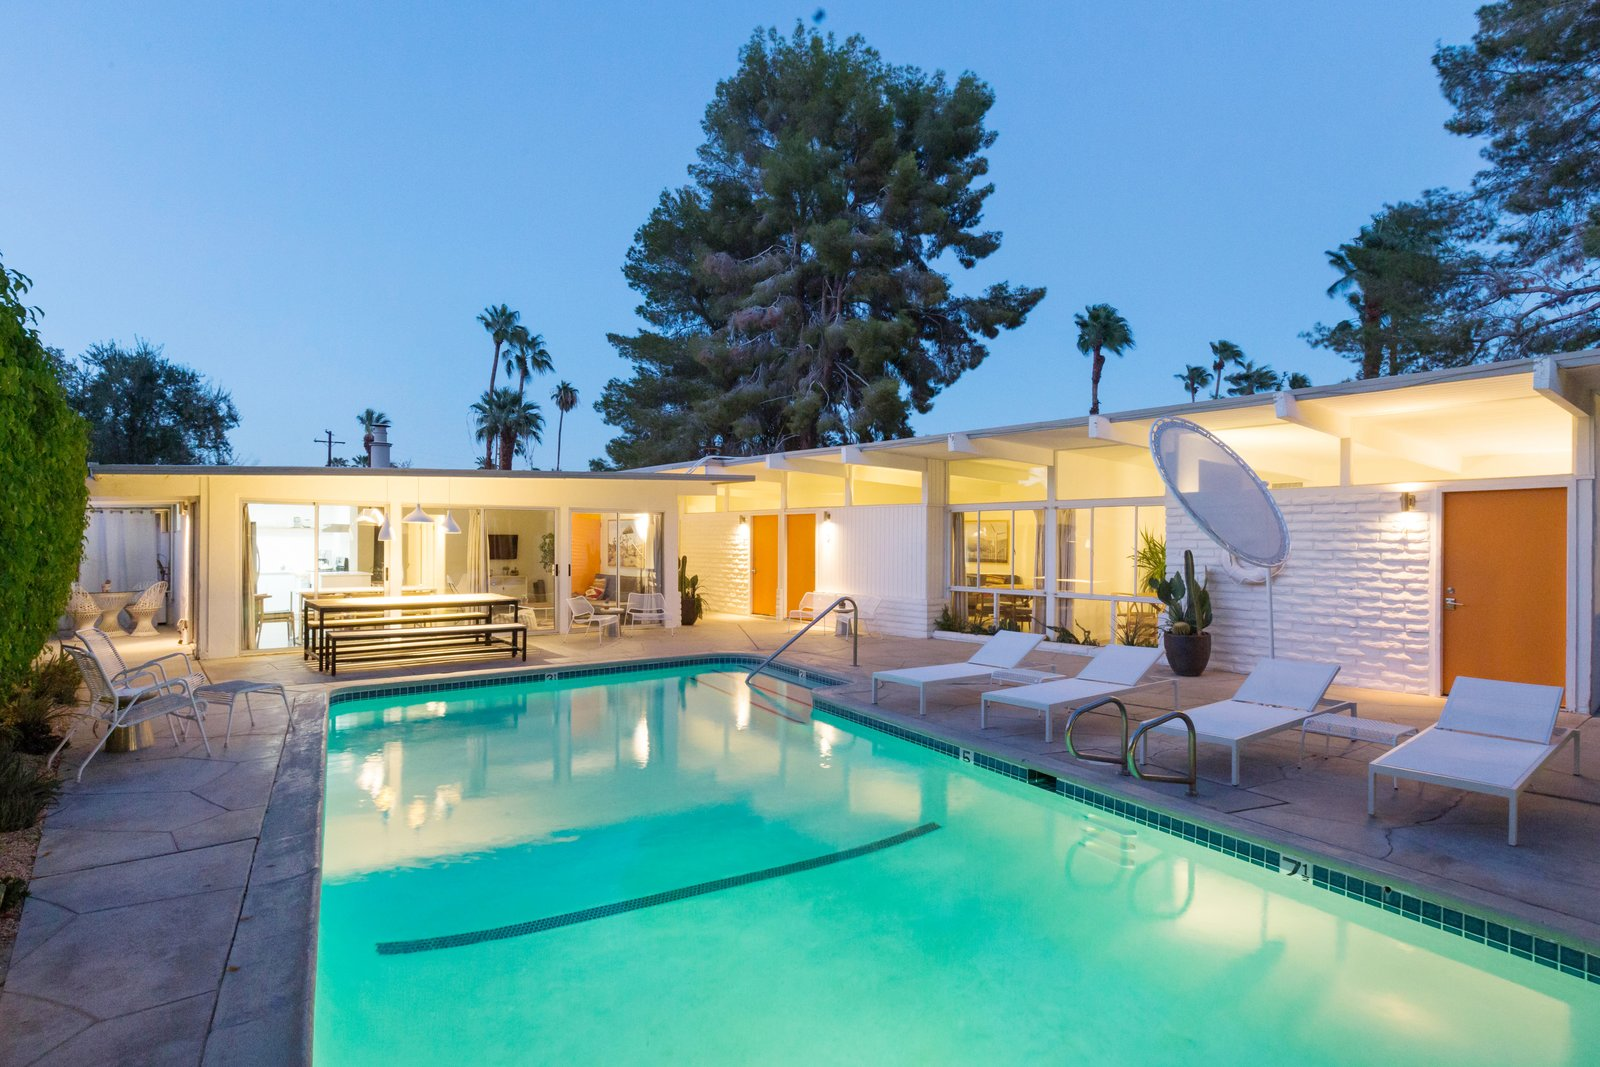 Photo 11 of 12 in A Celebrated Palm Springs Hotel Asks $1.8M